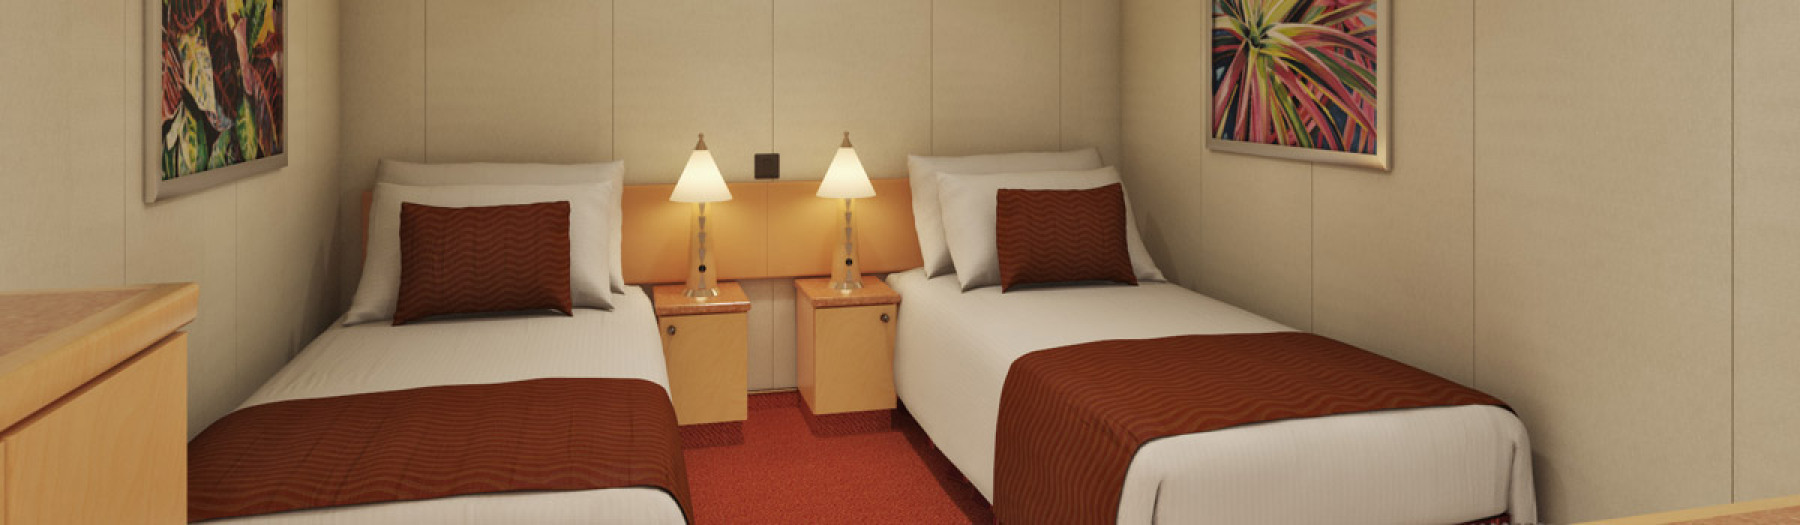 Carnival Cruise Lines Carnival Dream AccommodationInterior.jpg